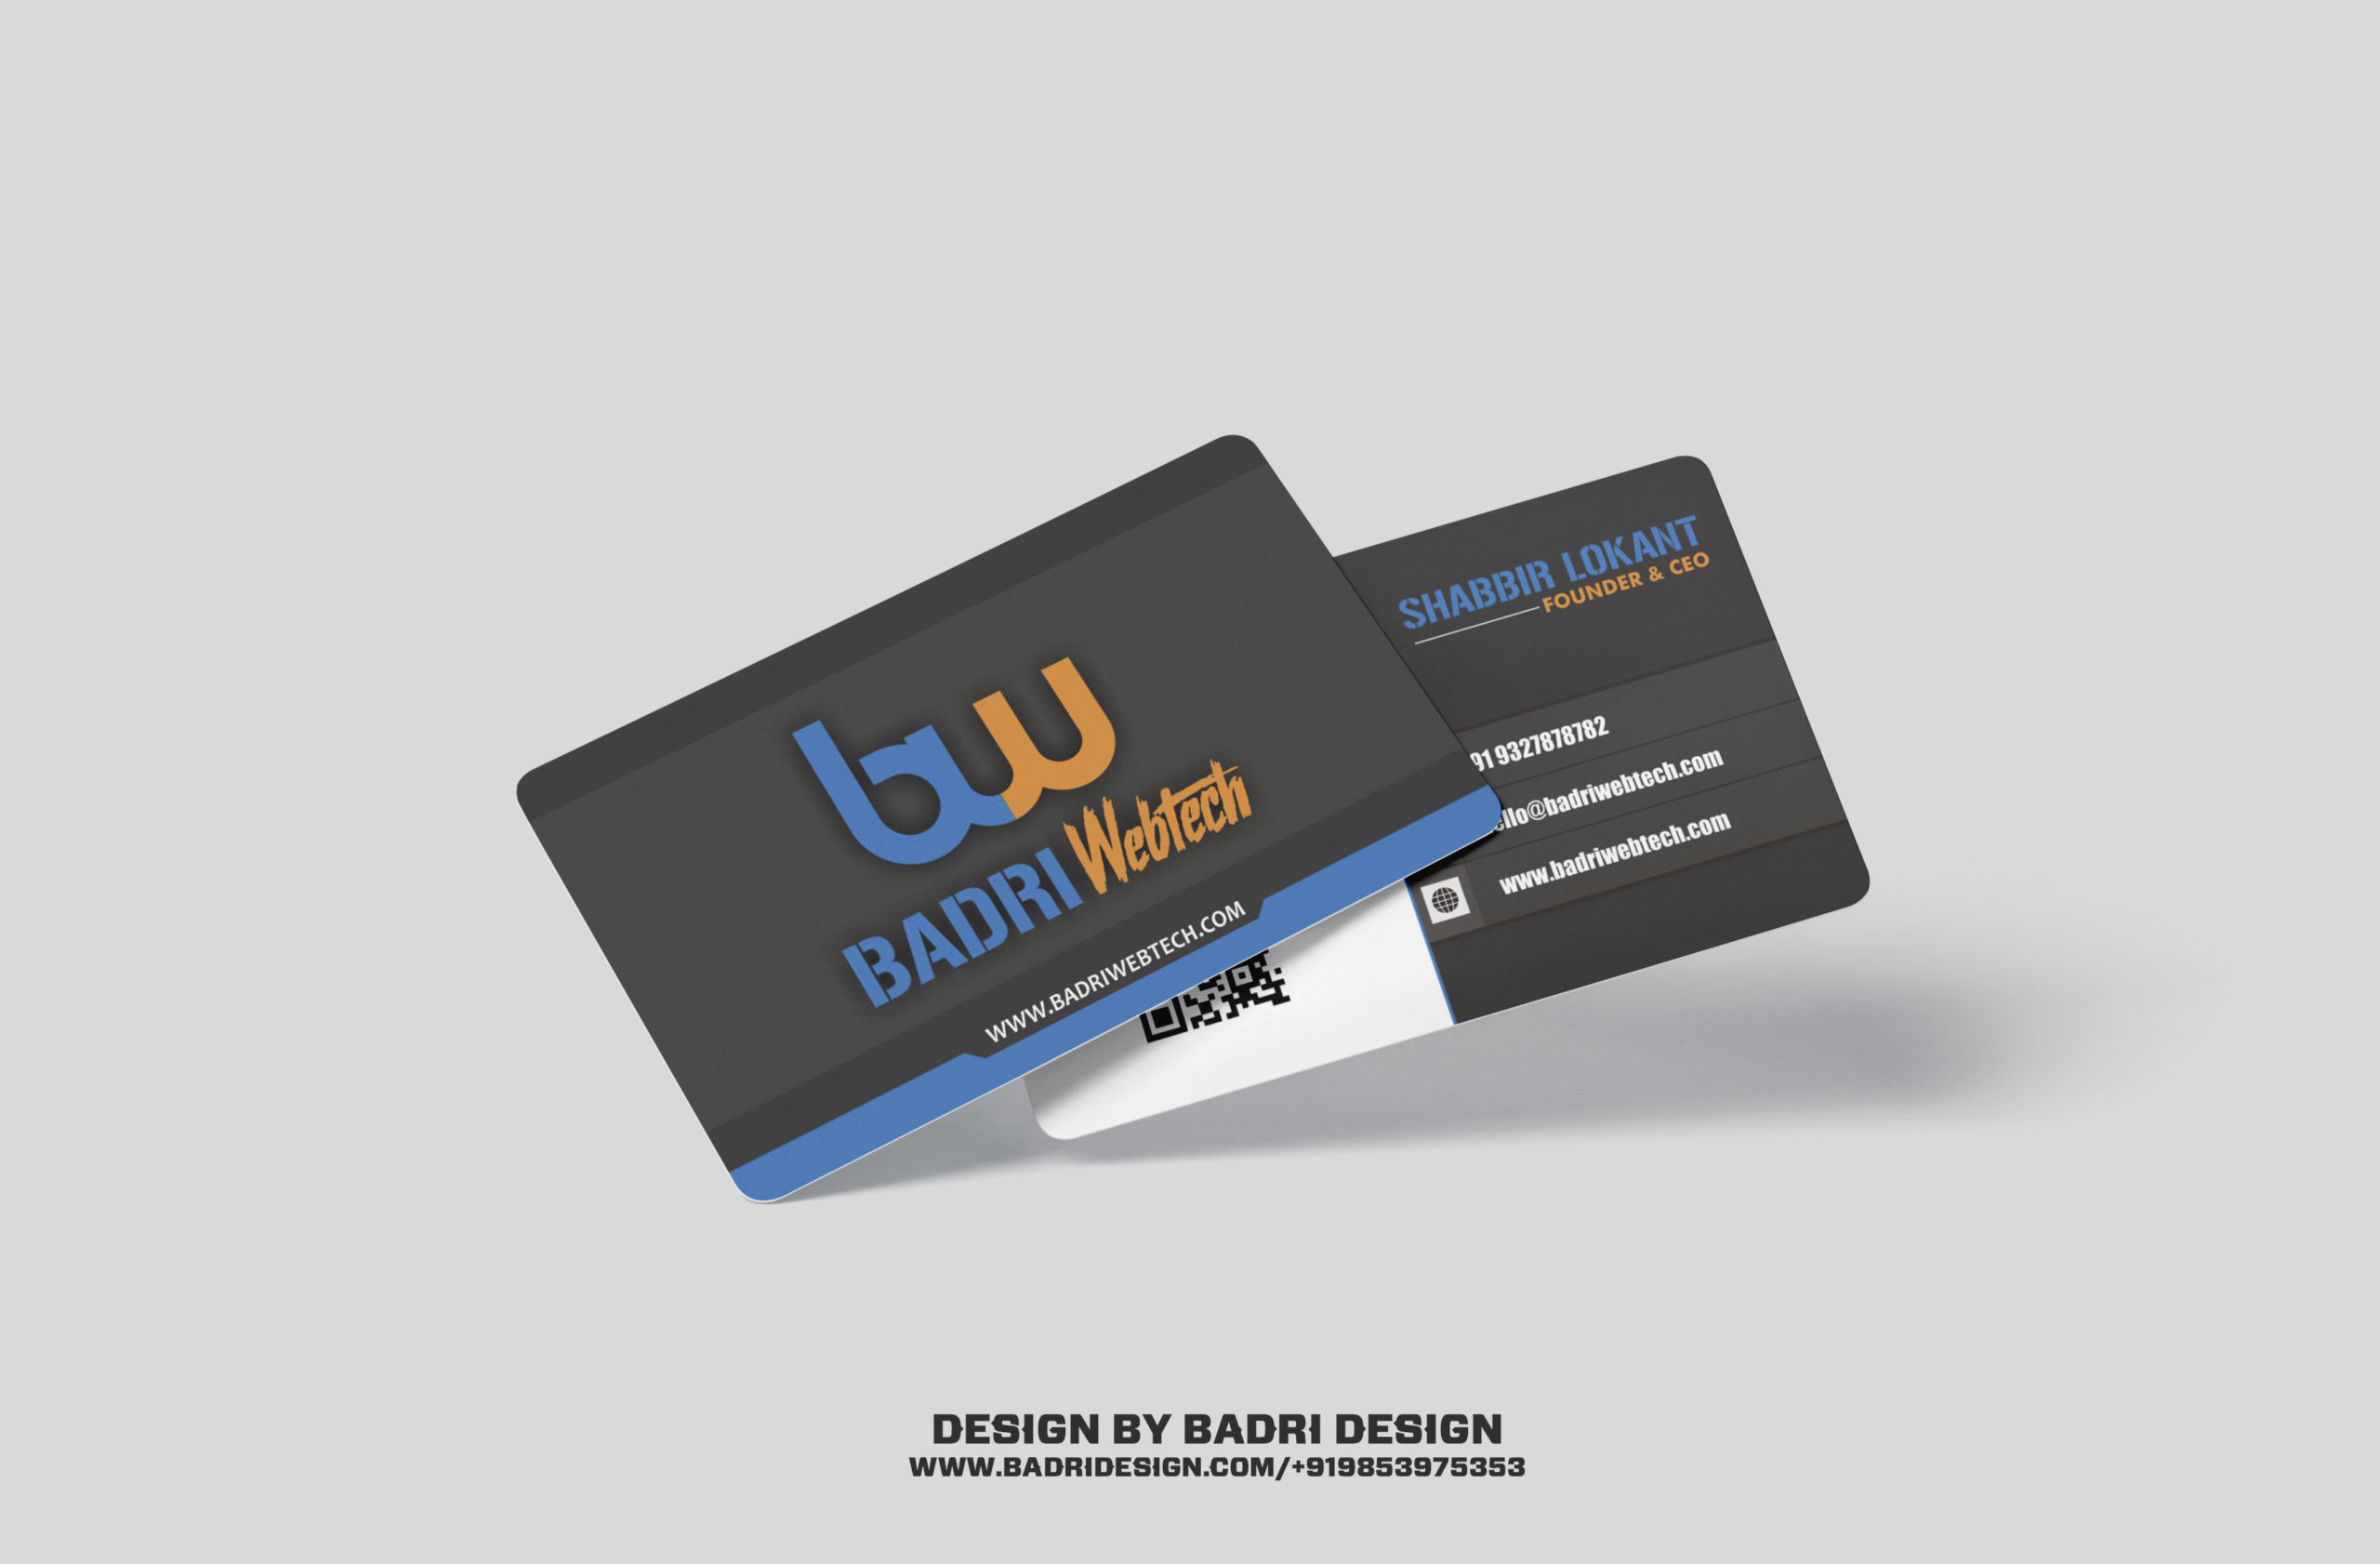 Webtech company business card design by Badri Design